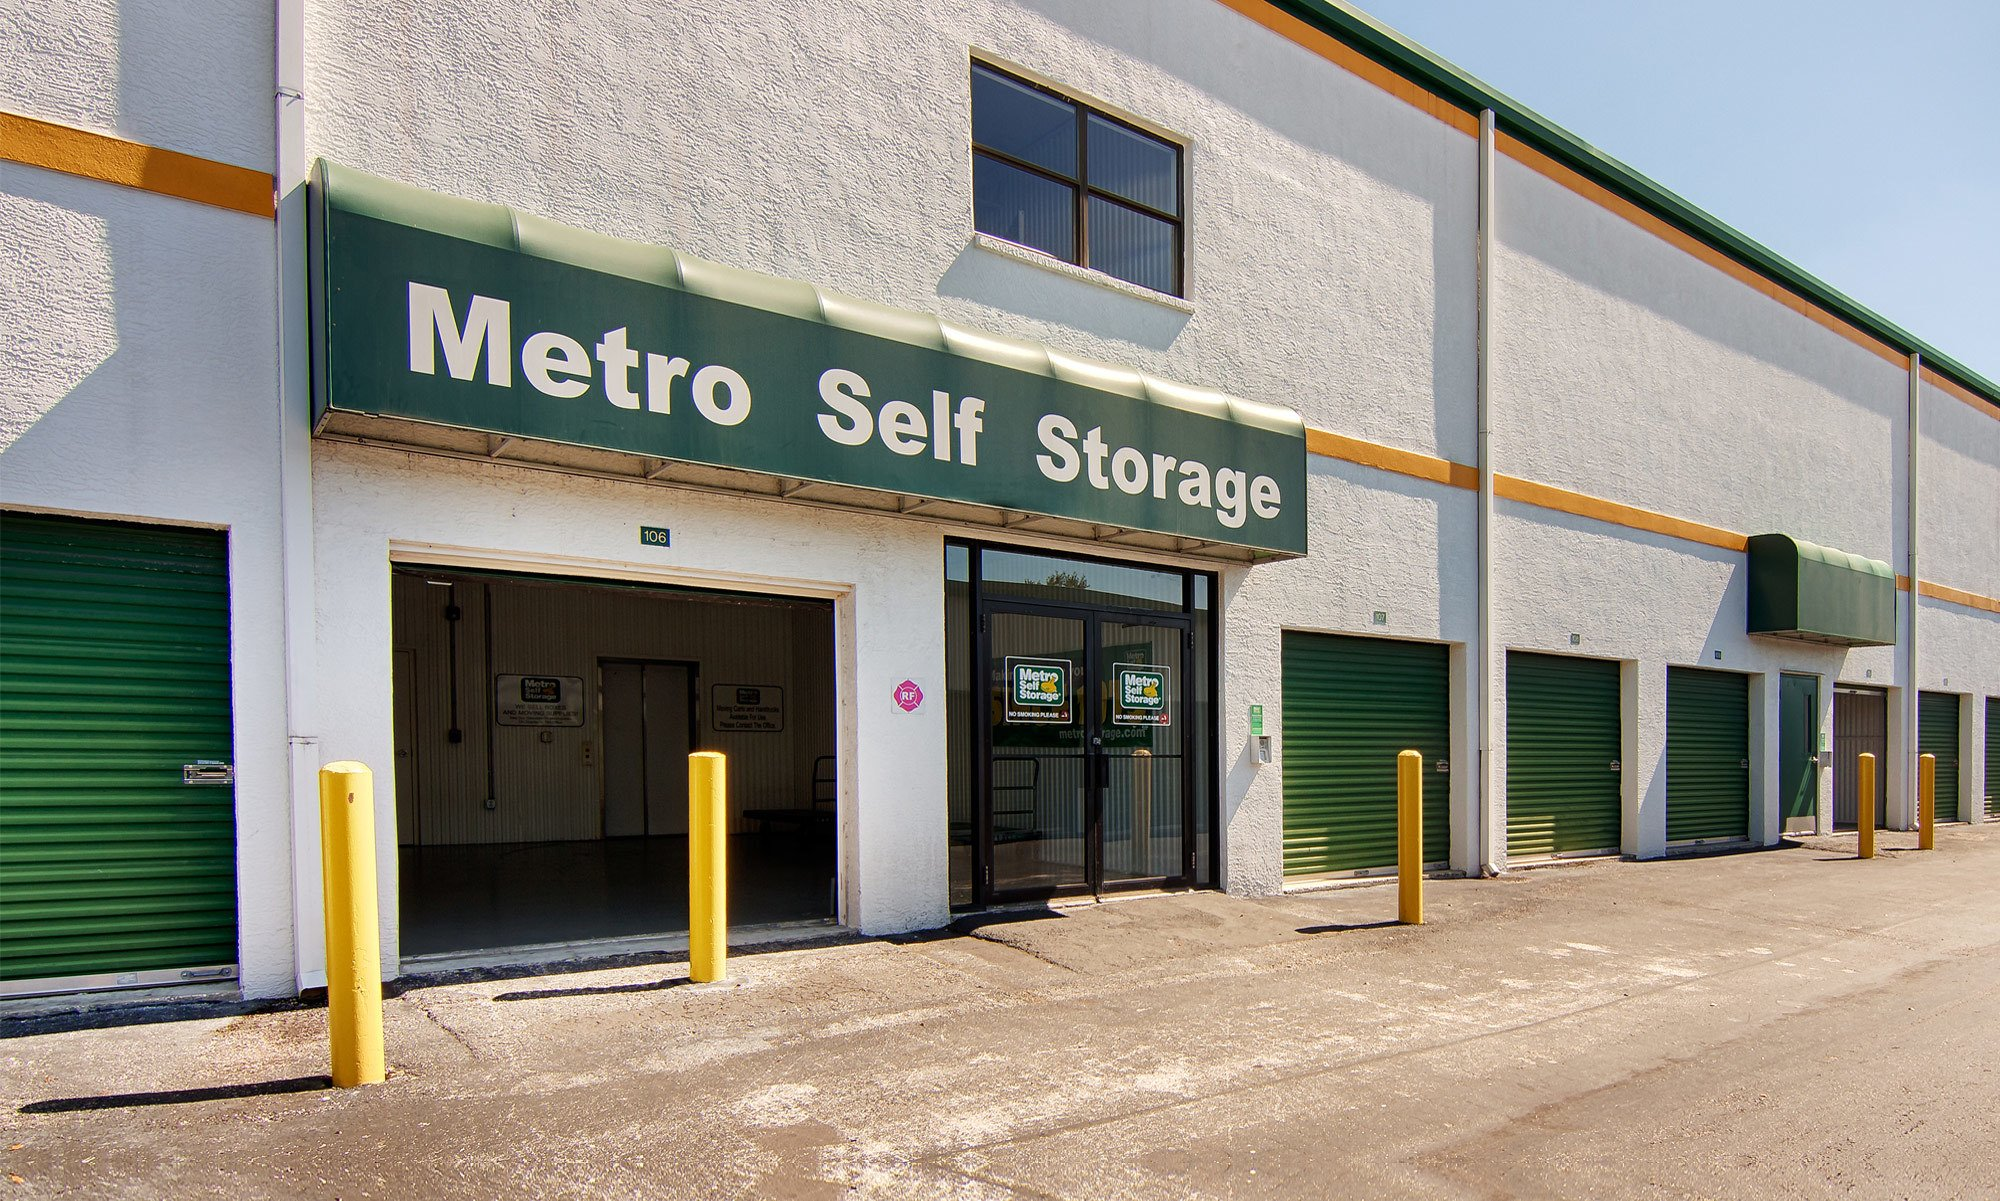 Metro Self Storage in Tampa, FL